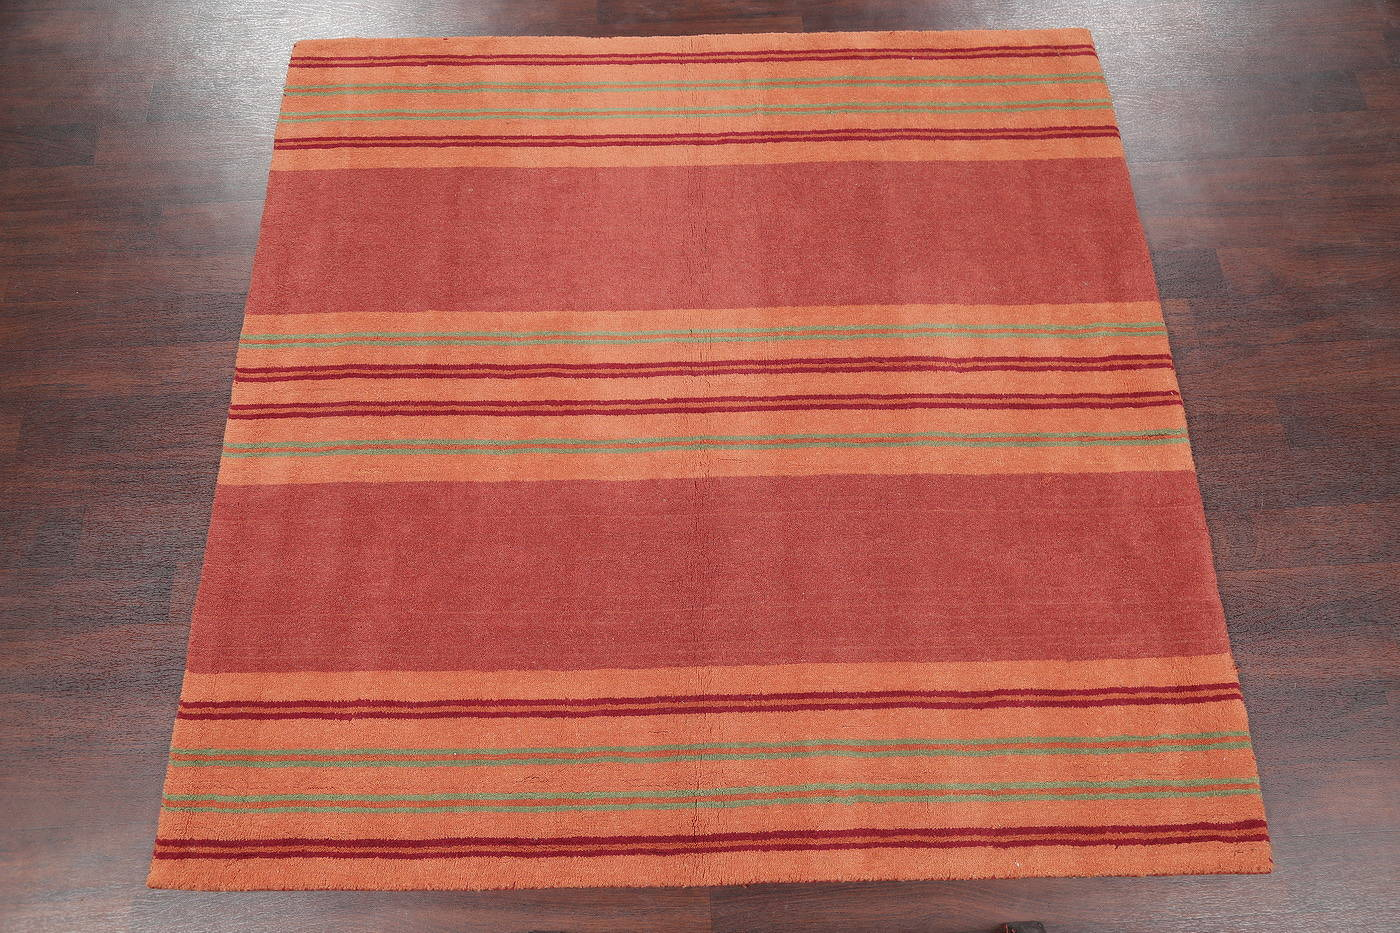 Contemporary Tufted Indian Oriental Square Rug 6x6